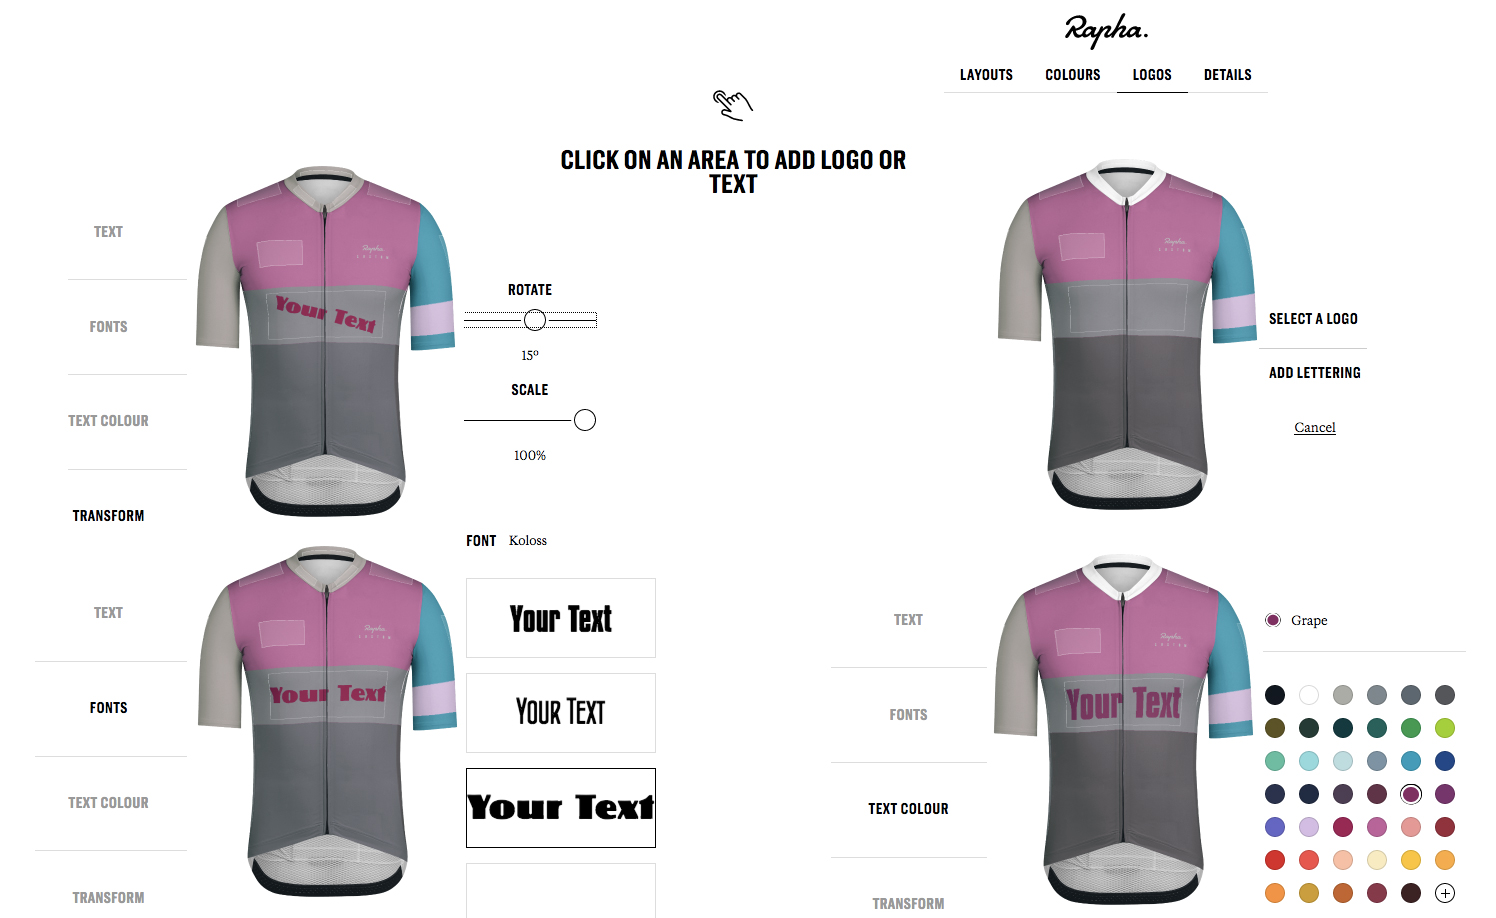 Rapha Custom Pro Team mid jersey cycling apparel